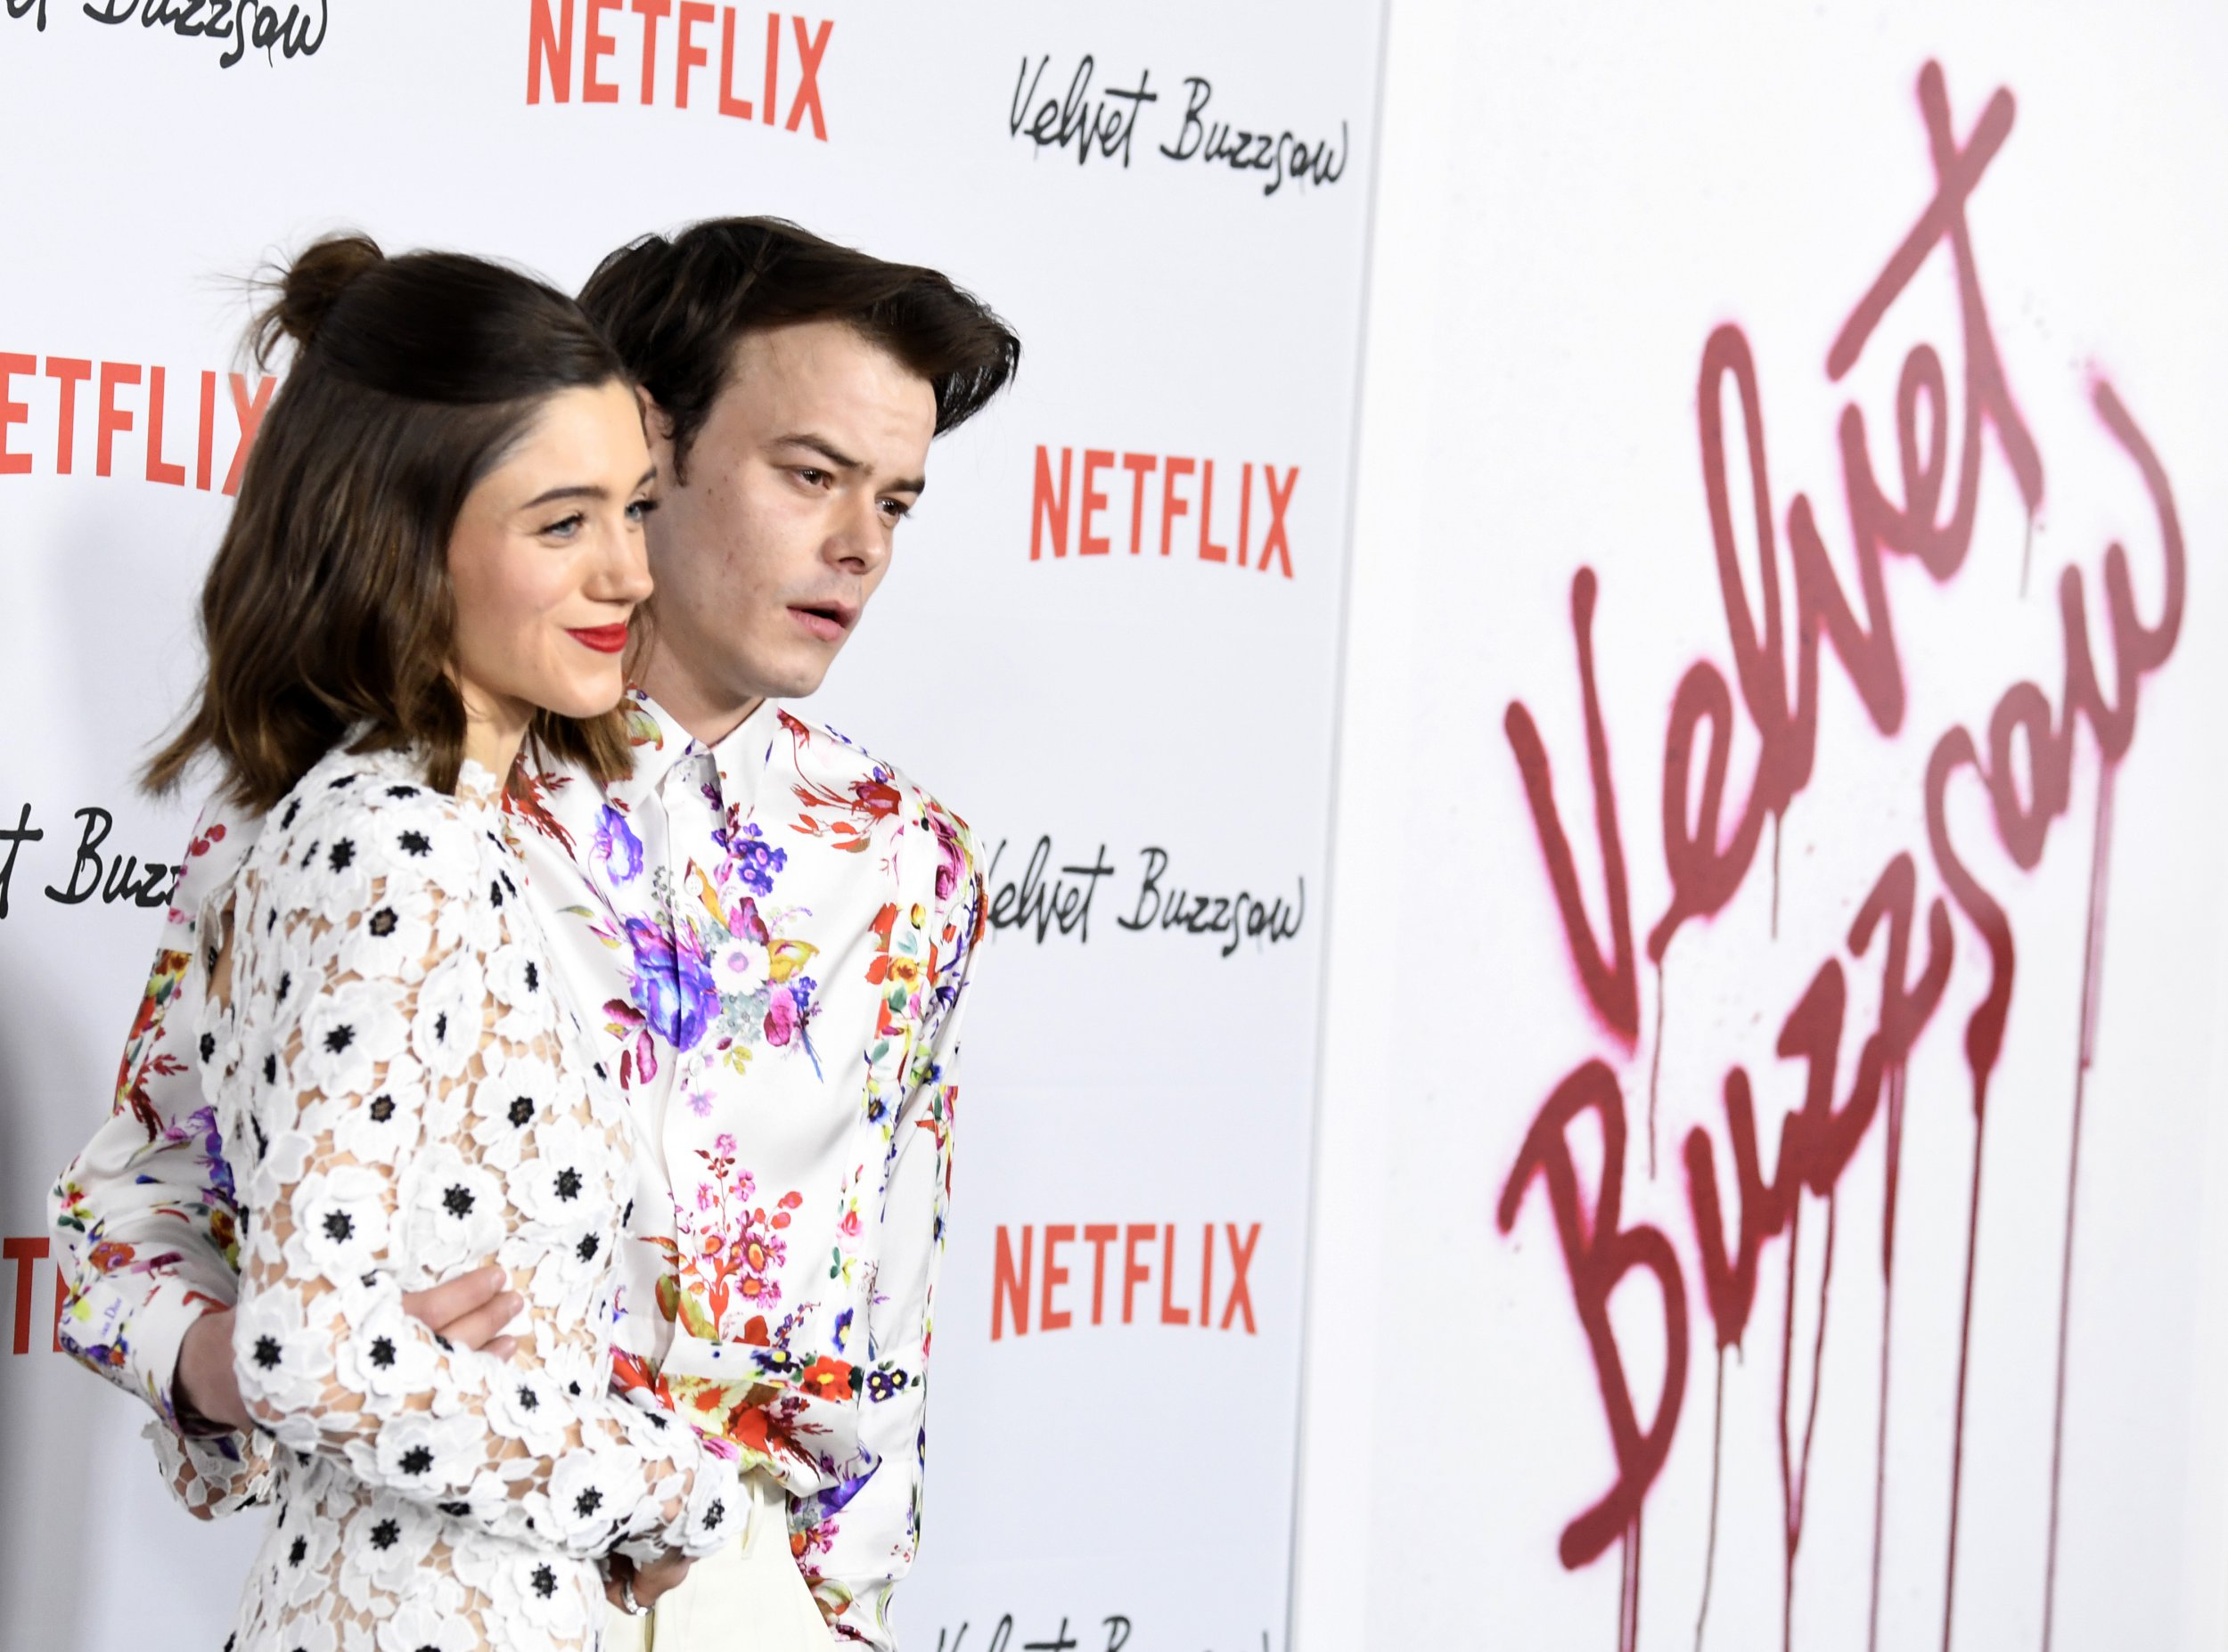 Natalia Dyer and Stranger Things boyfriend Charlie Heaton look all loved up at Velvet Buzzsaw premiere